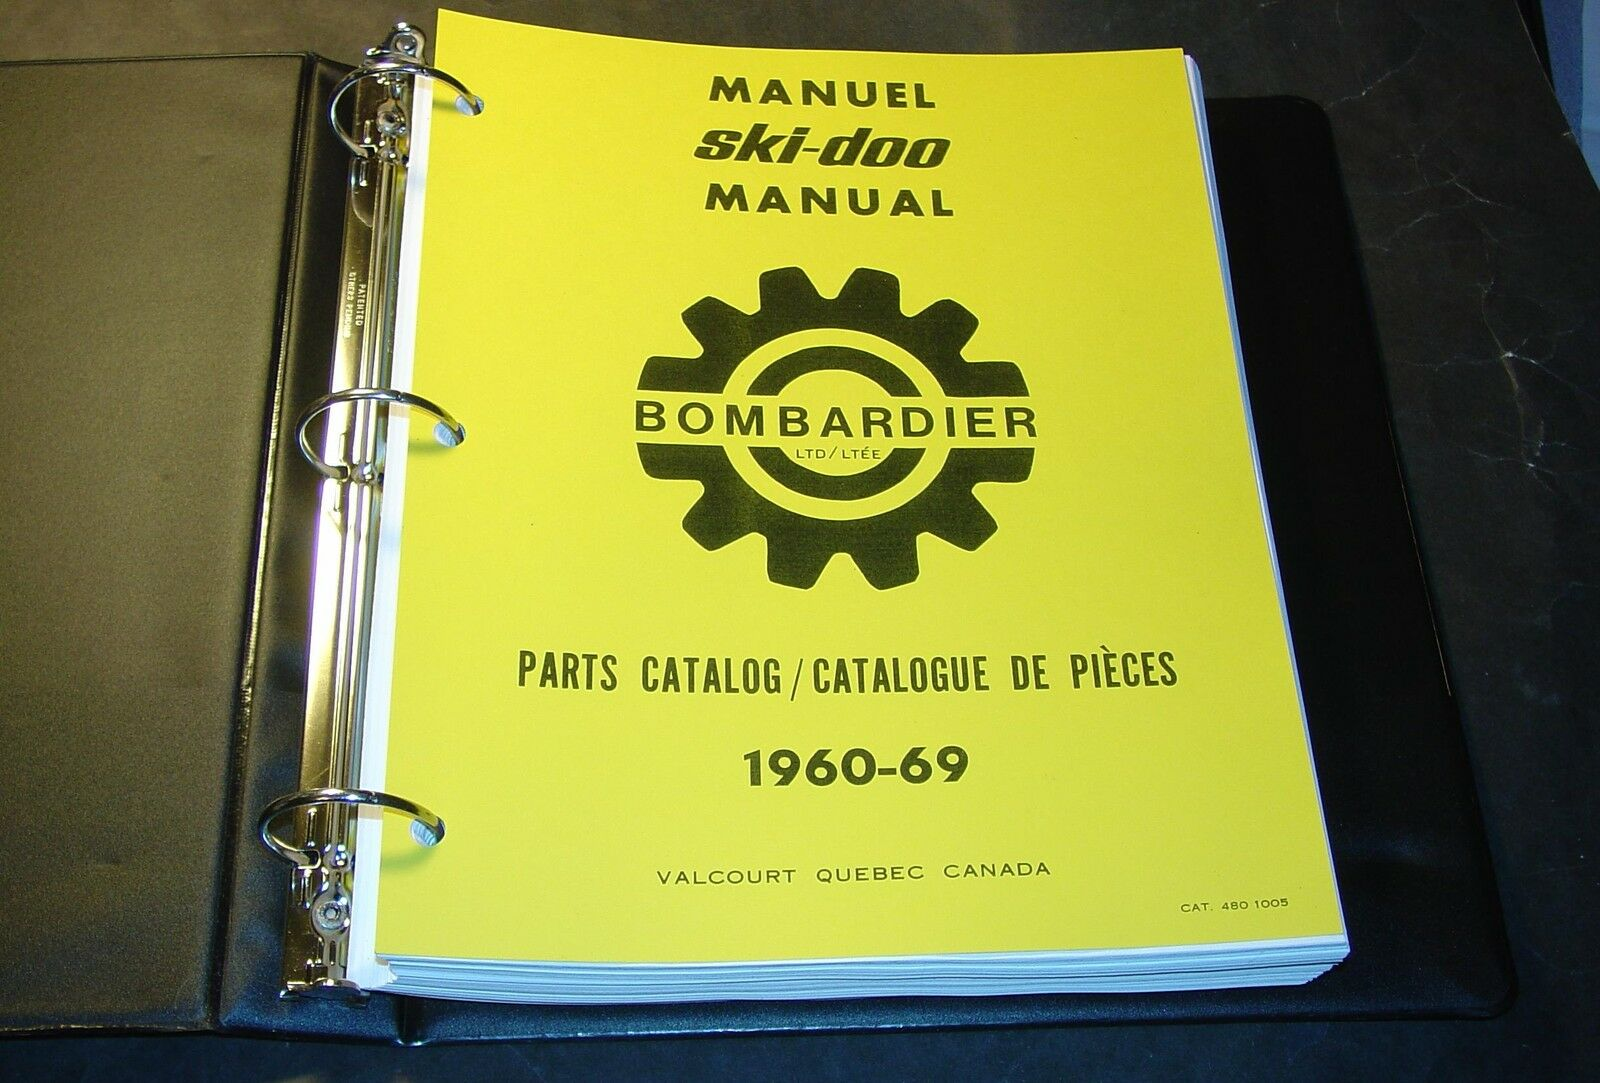 1960-1969 SKI-DOO T'NT OLYMPIQUE, NORDIC PARTS MANUAL  SNOWMOBILE 450 PAGES (289)  most preferential